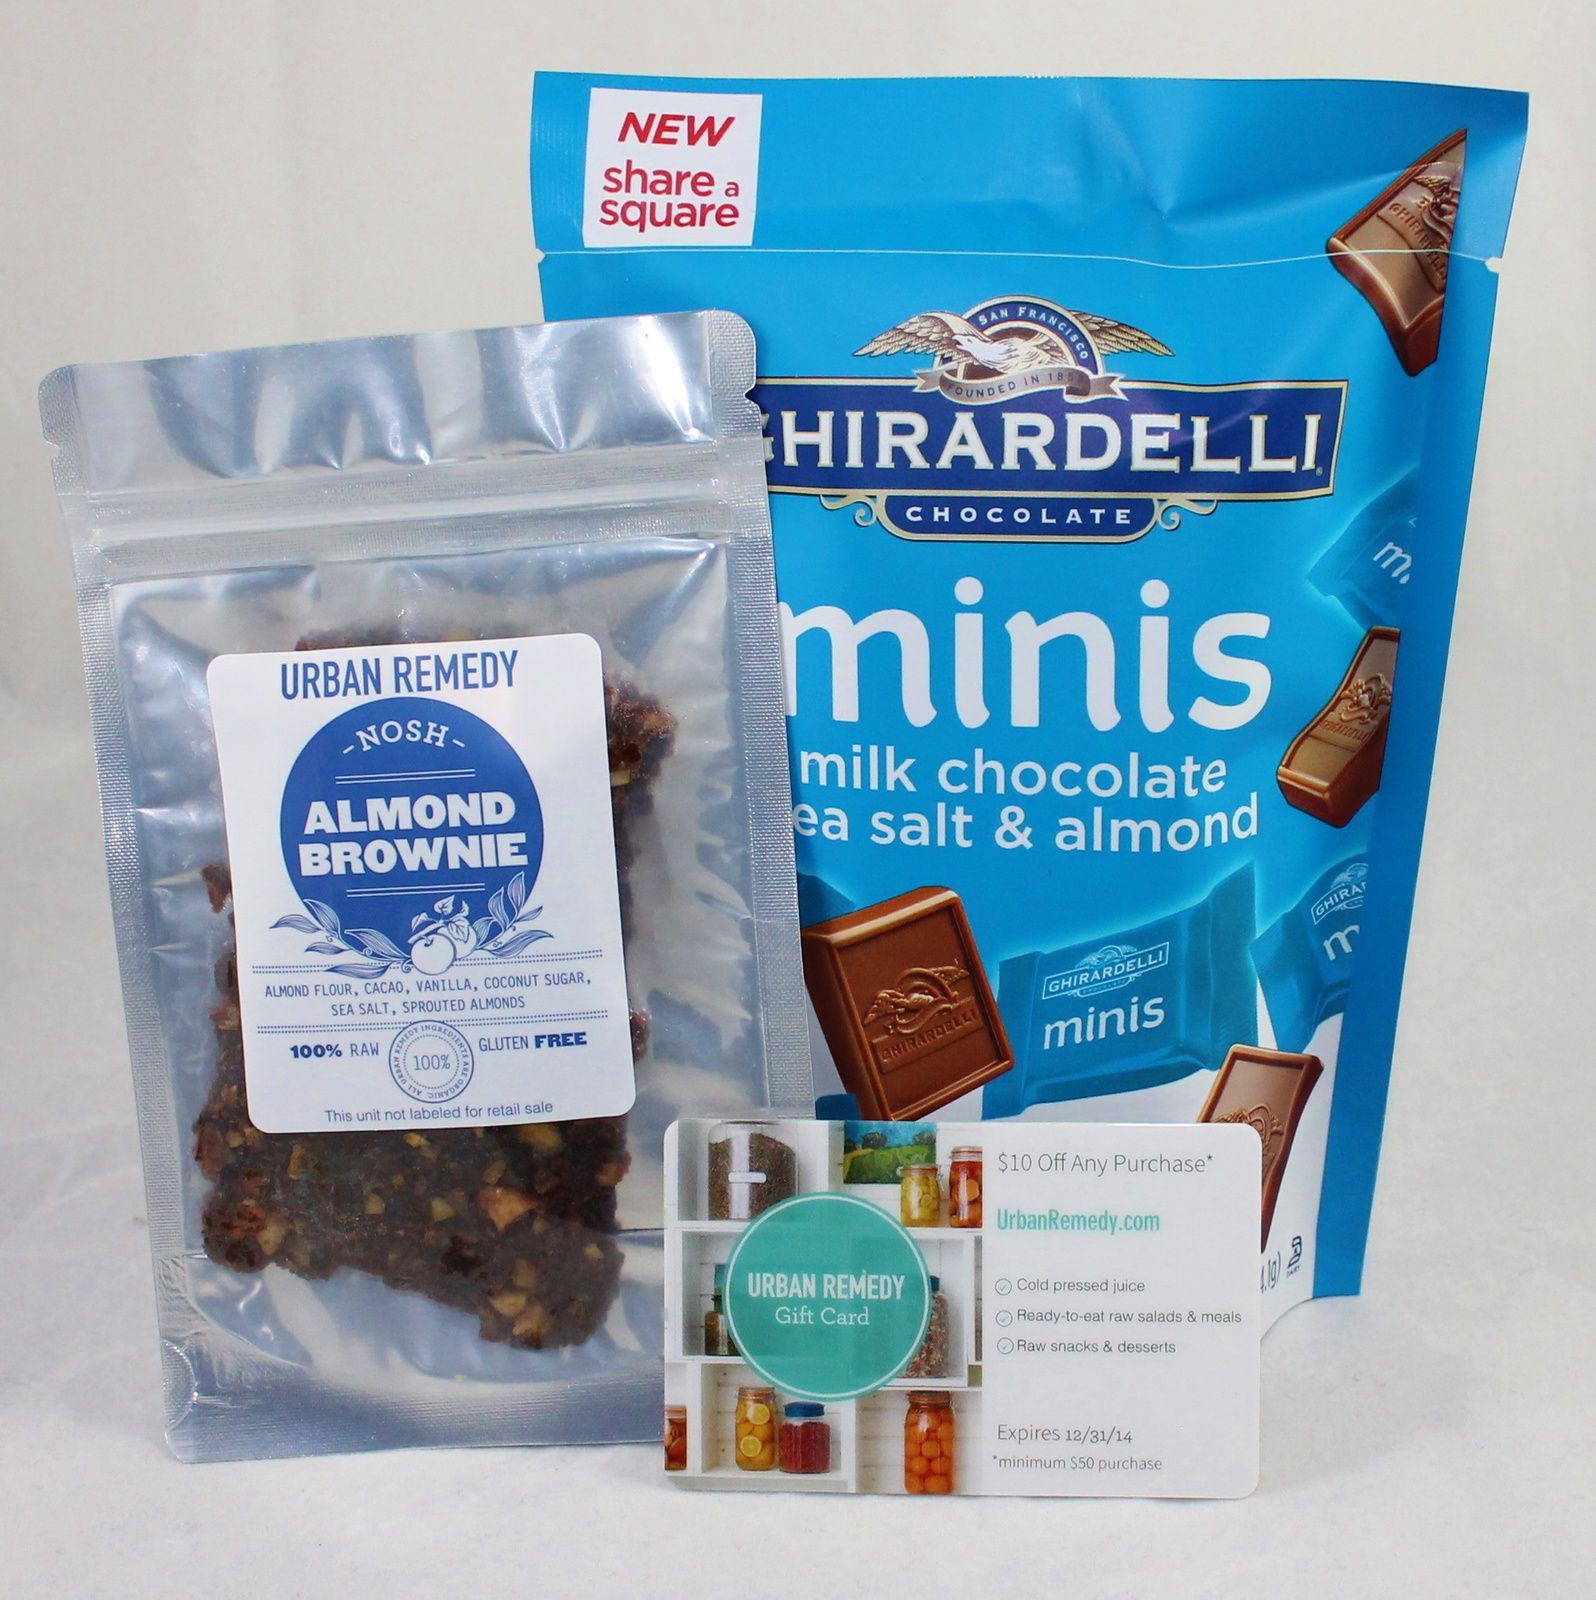 Urban Remedy Almond Brownie (+ coupon) & Ghirerdelli Milk Chocolate Sea Salt and Almond Minis.